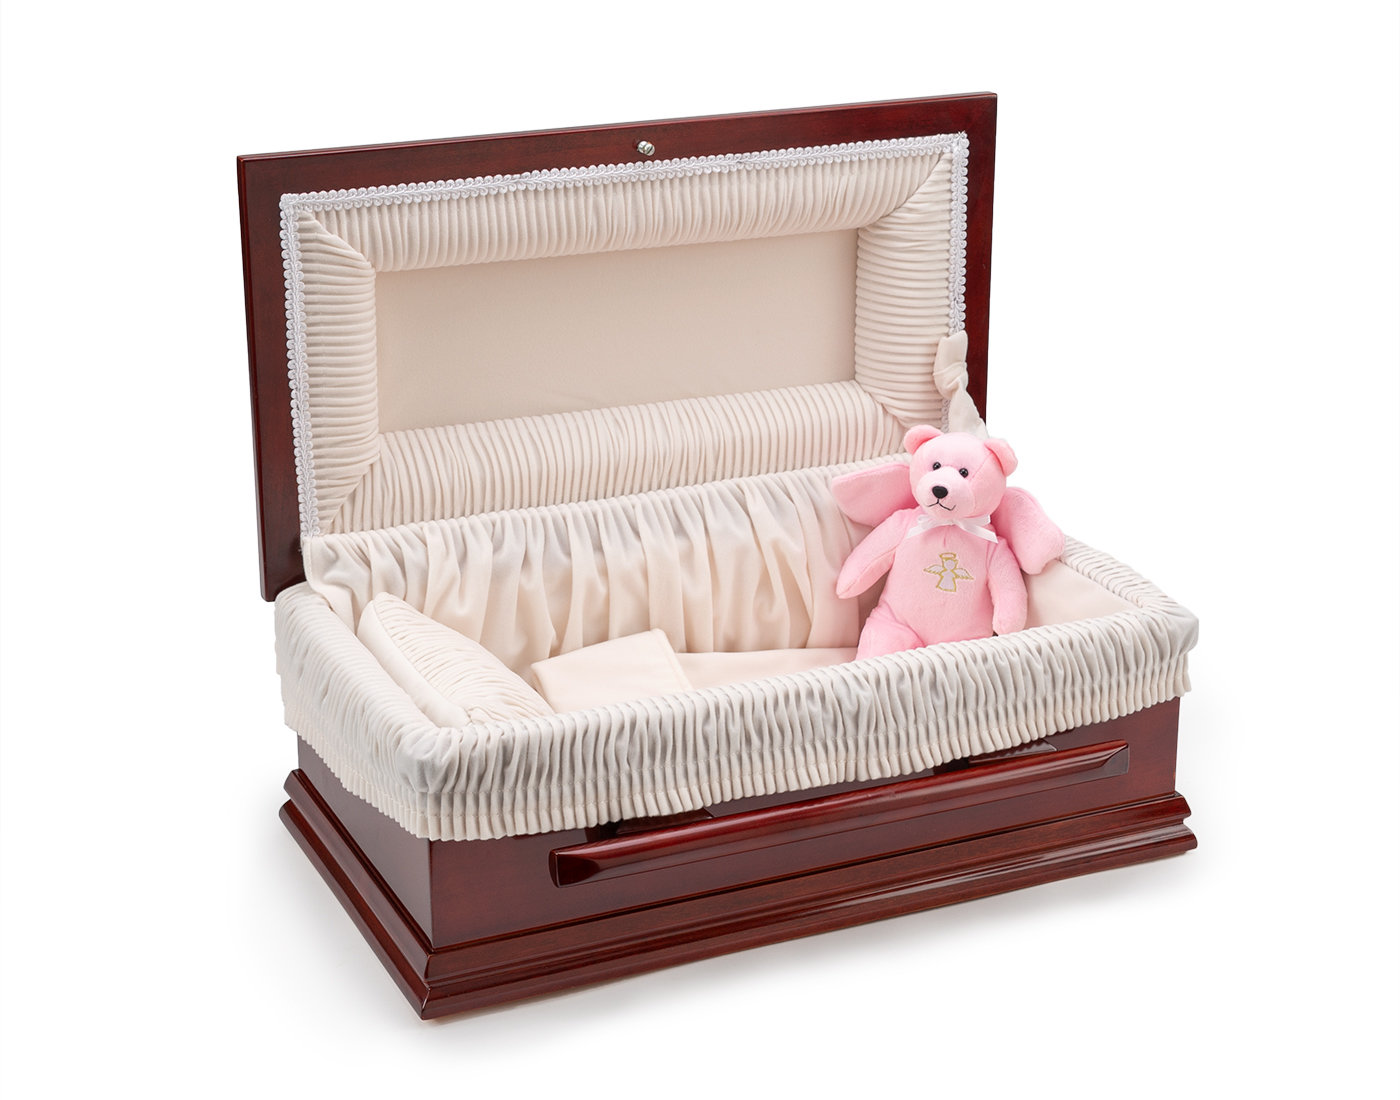 19 Inch Classic Wood Baby Casket with Slide Lock     C-19-SO